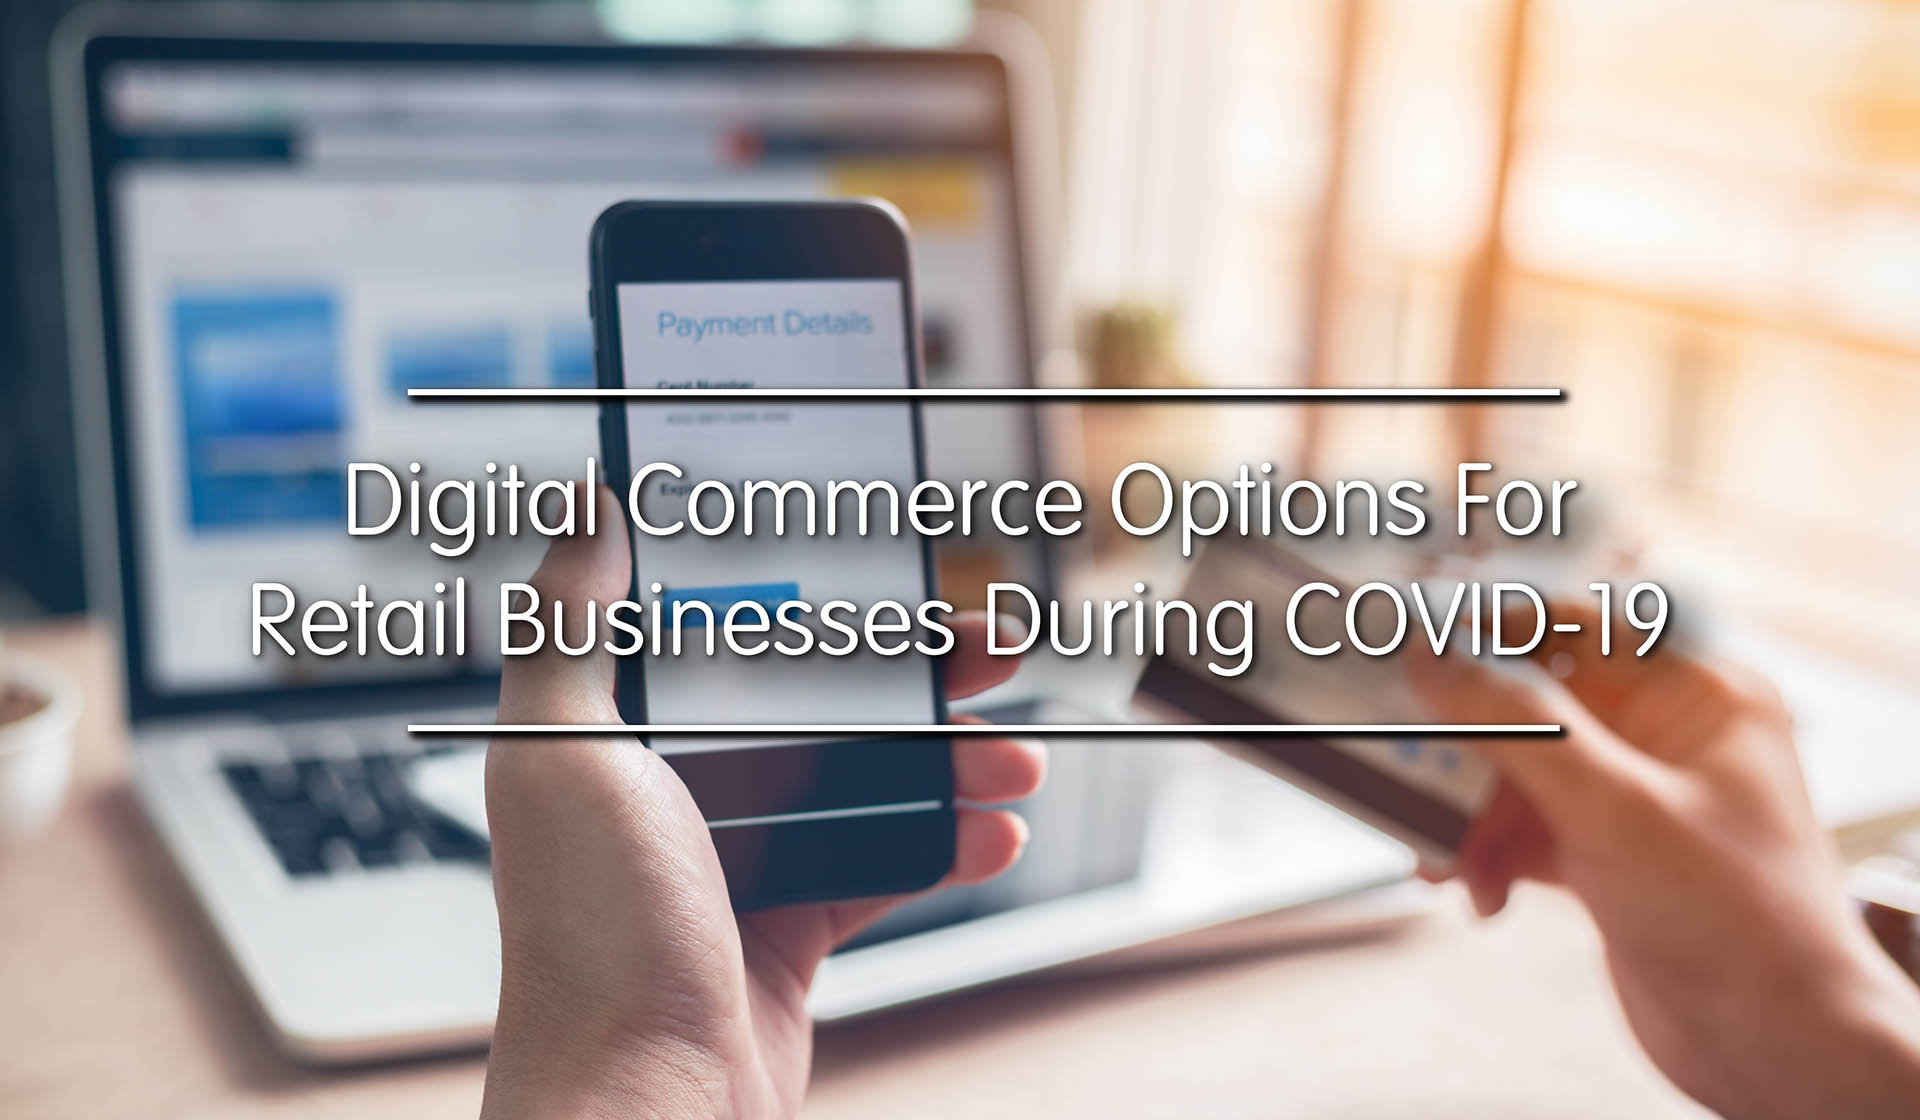 Digital Commerce Options for Retail Businesses During COVID-19